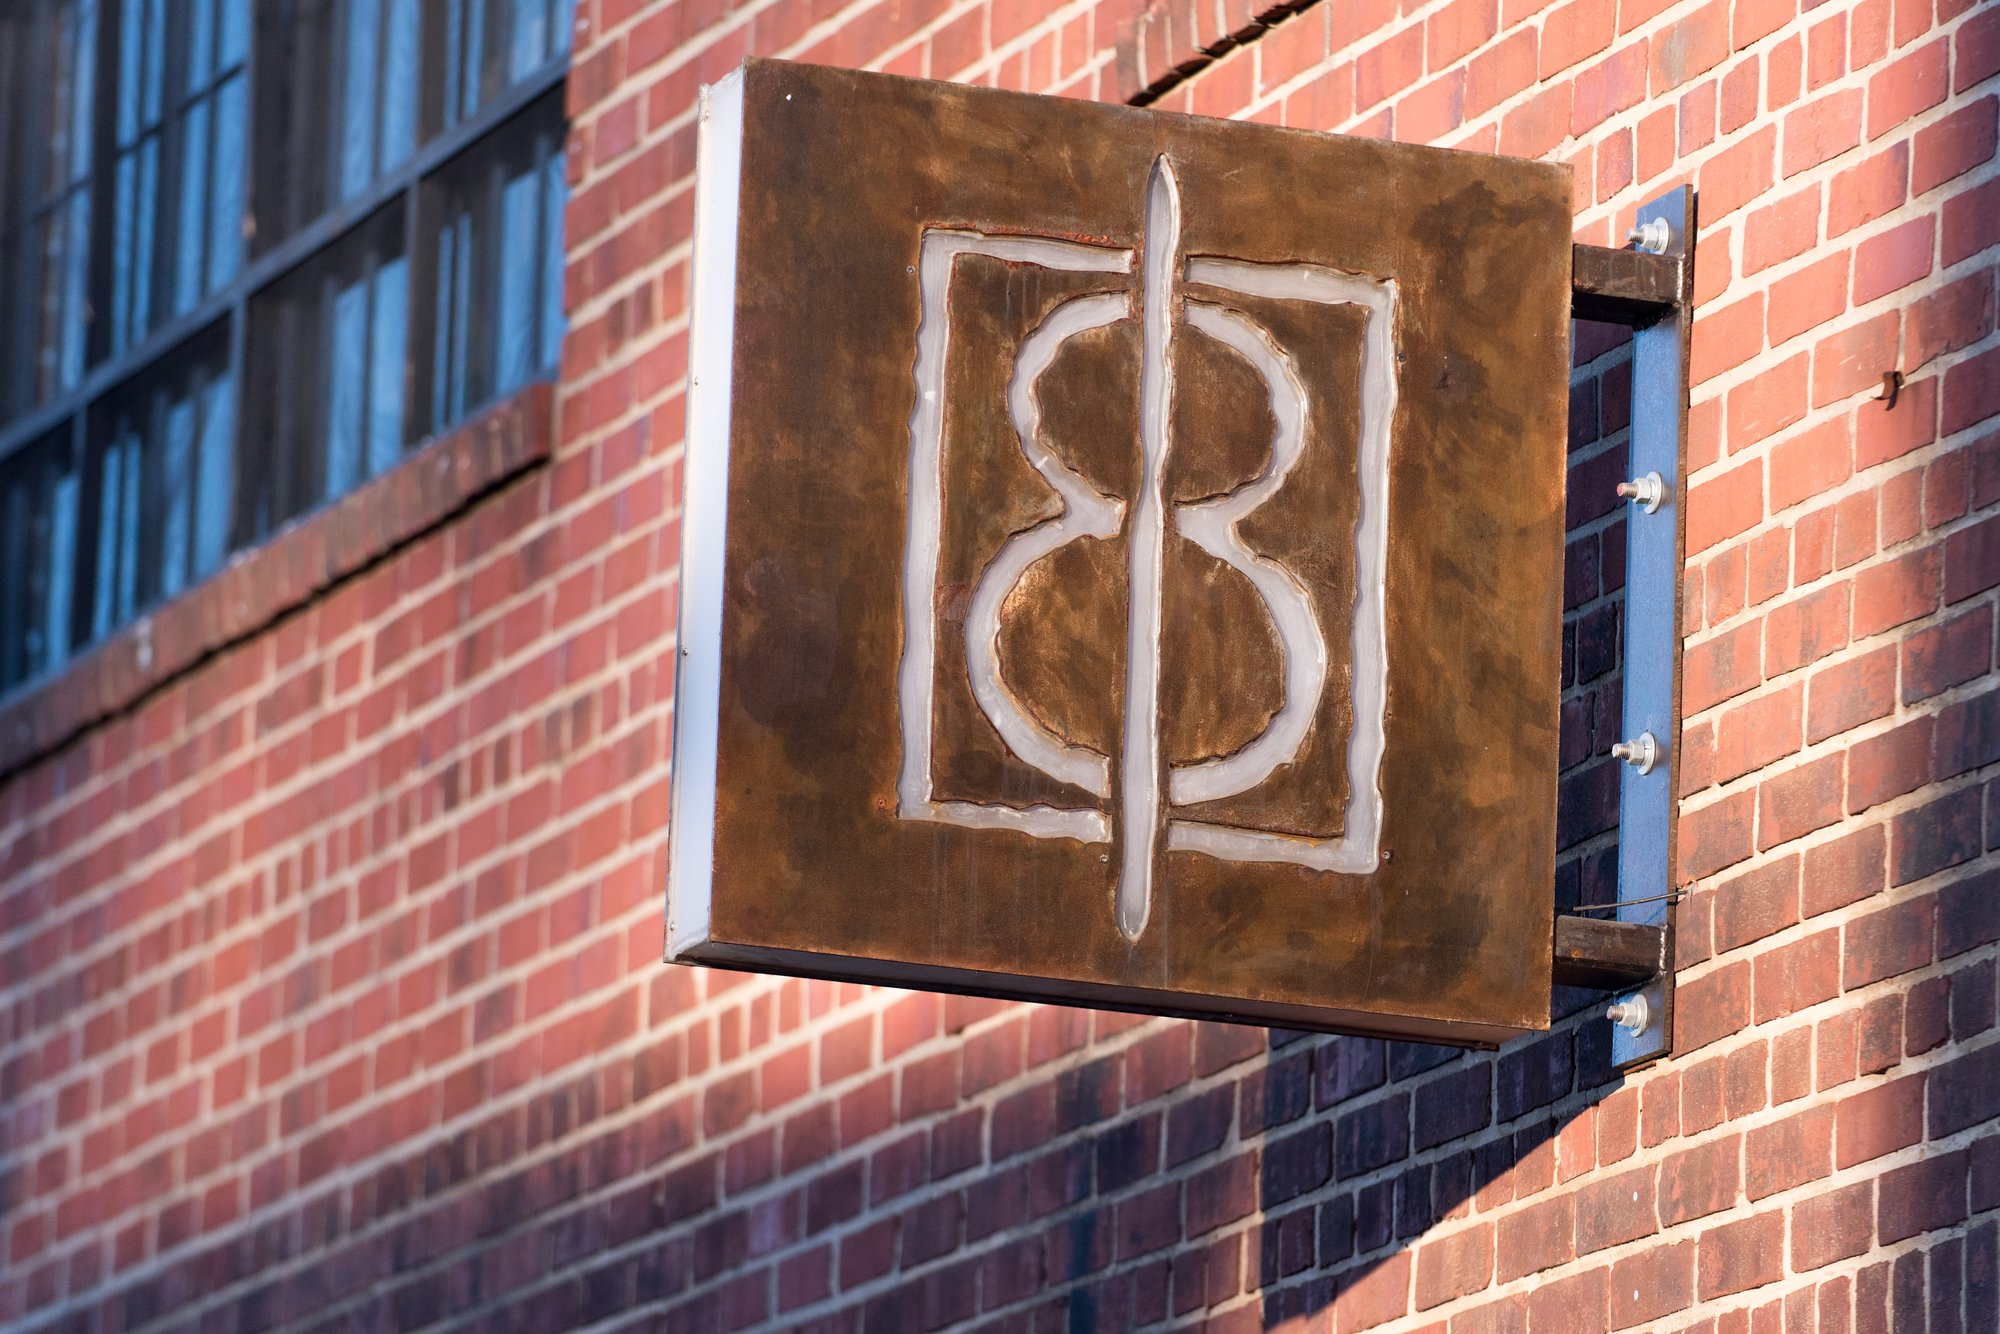 The sign for the One Eight Distillery in Ivy City, Washington, DC.